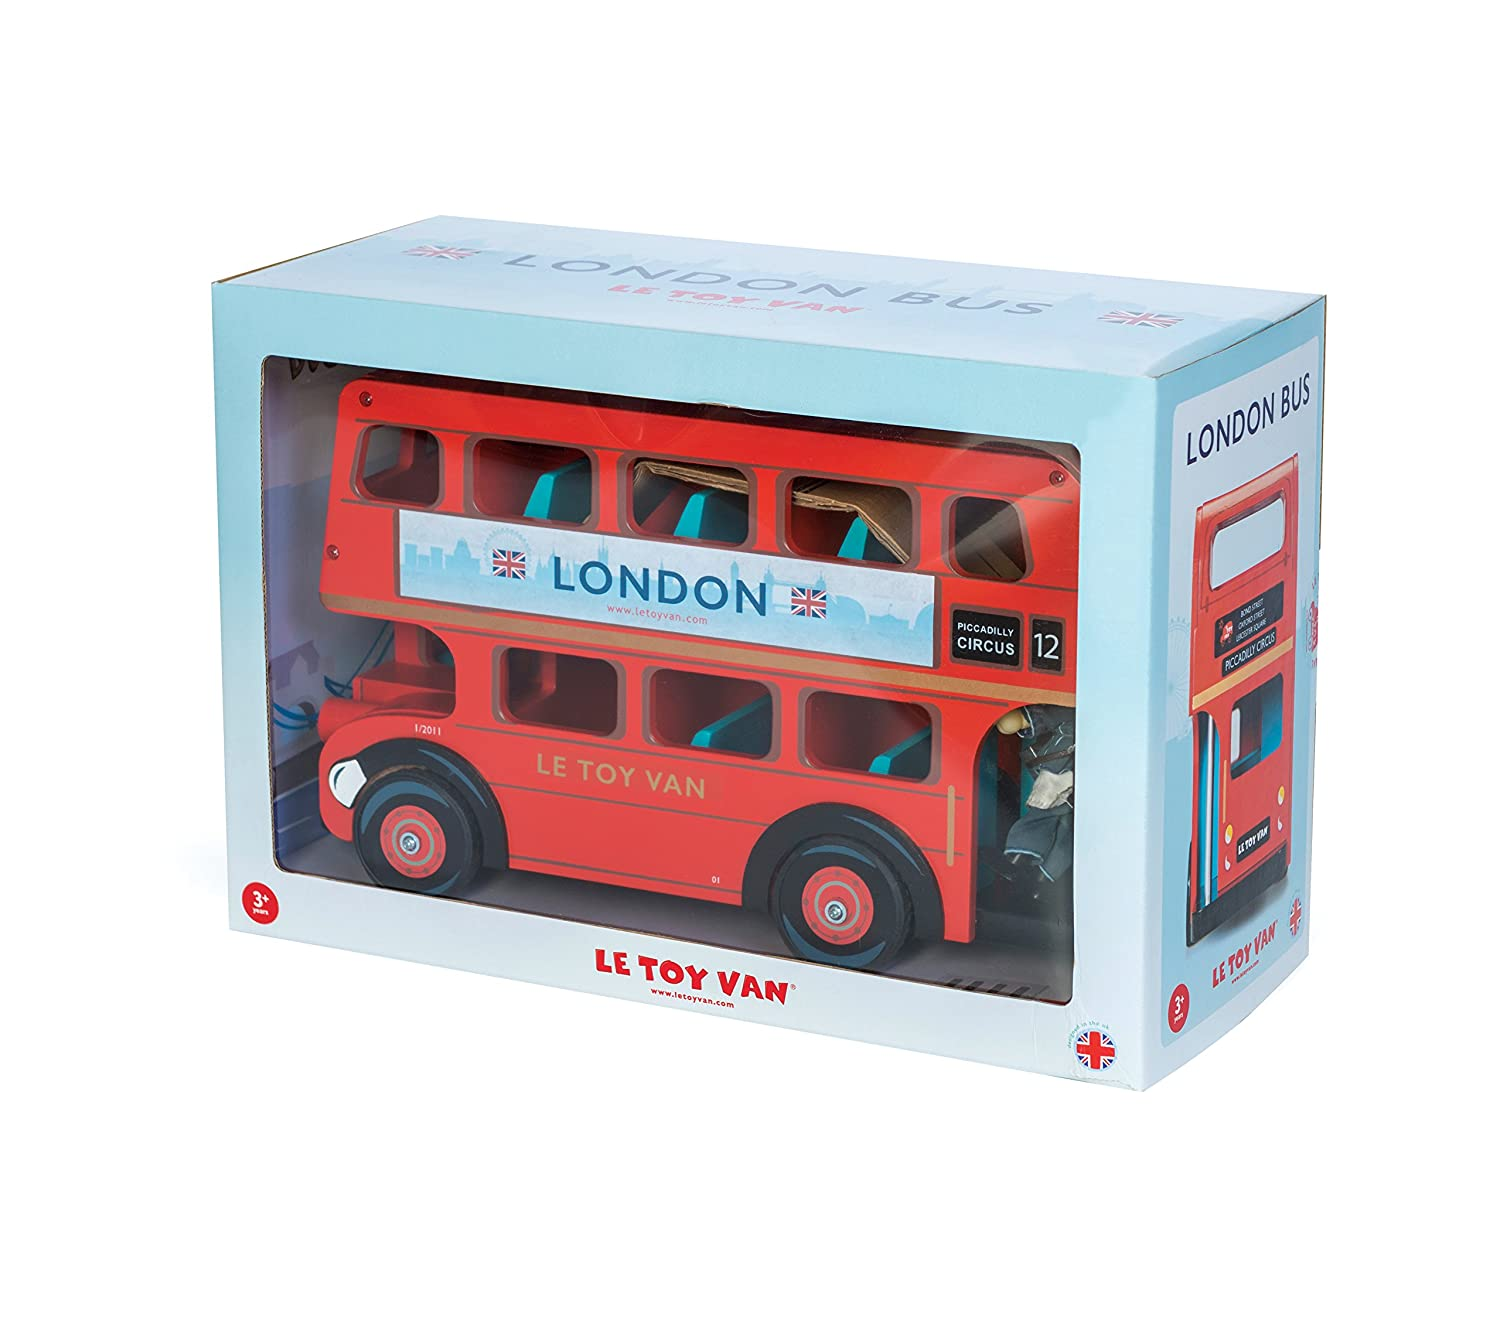 Le Toy Van Wooden London Bus Vehicle Toy With Budkin Bus Driver Figure